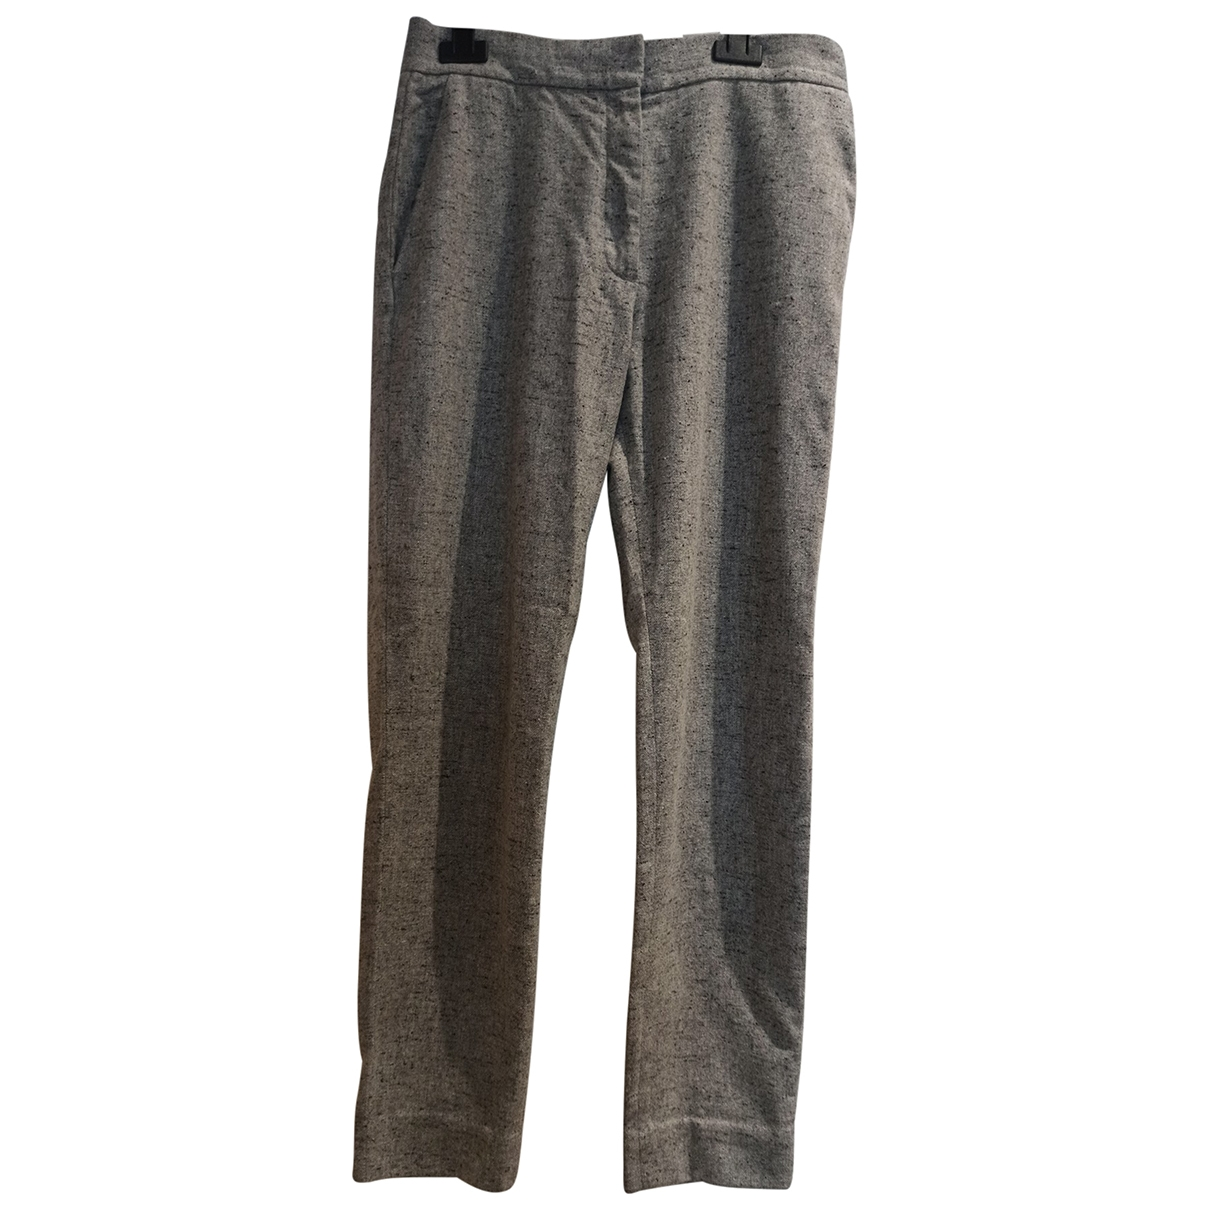 Cos \N Grey Wool Trousers for Women 36 FR